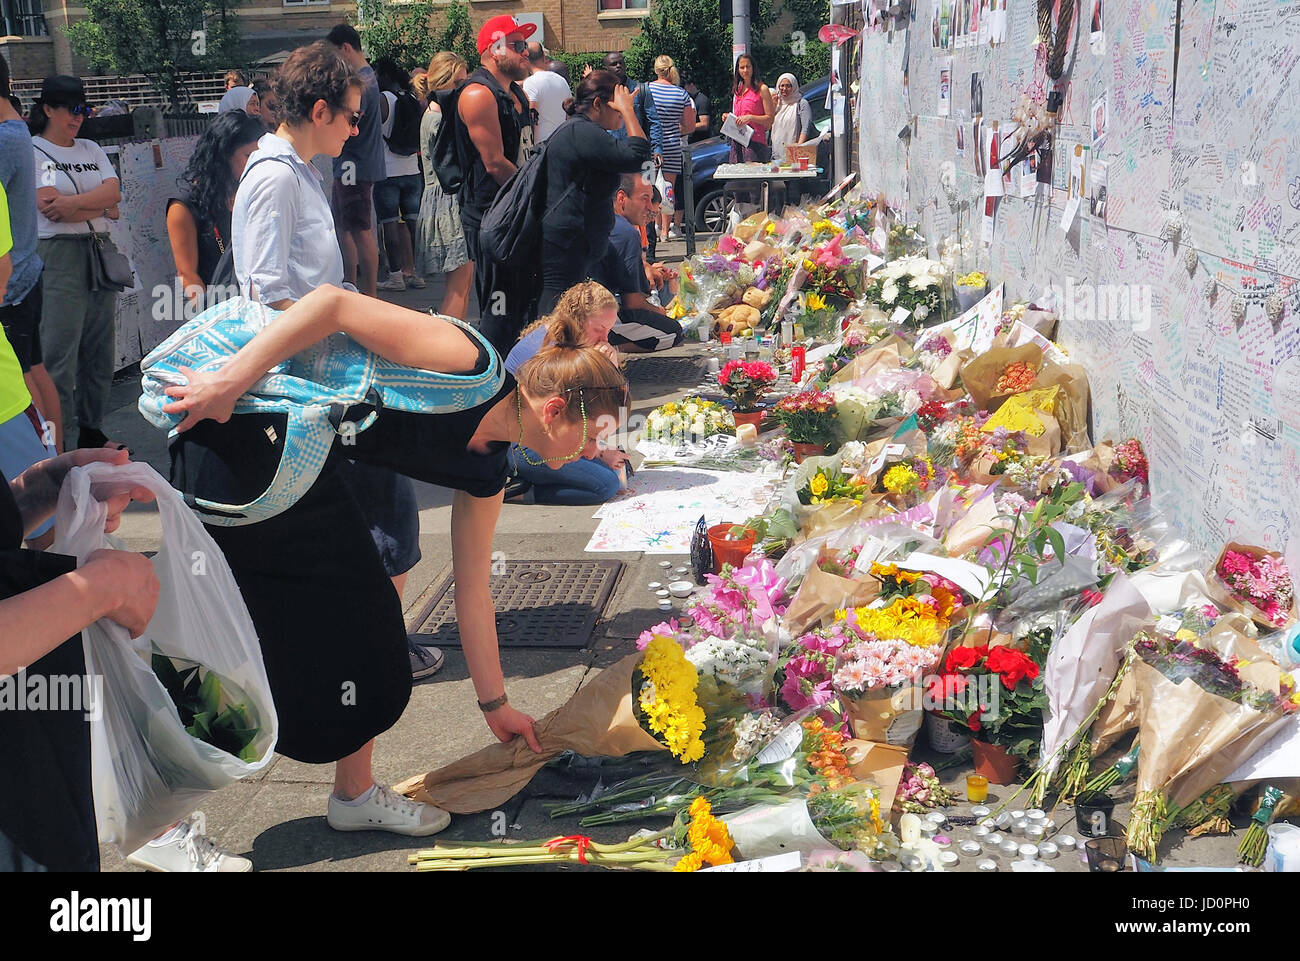 Grenfell Tower Disaster.People lay floral tributes to the Grenfell Fire Disaster - Stock Image